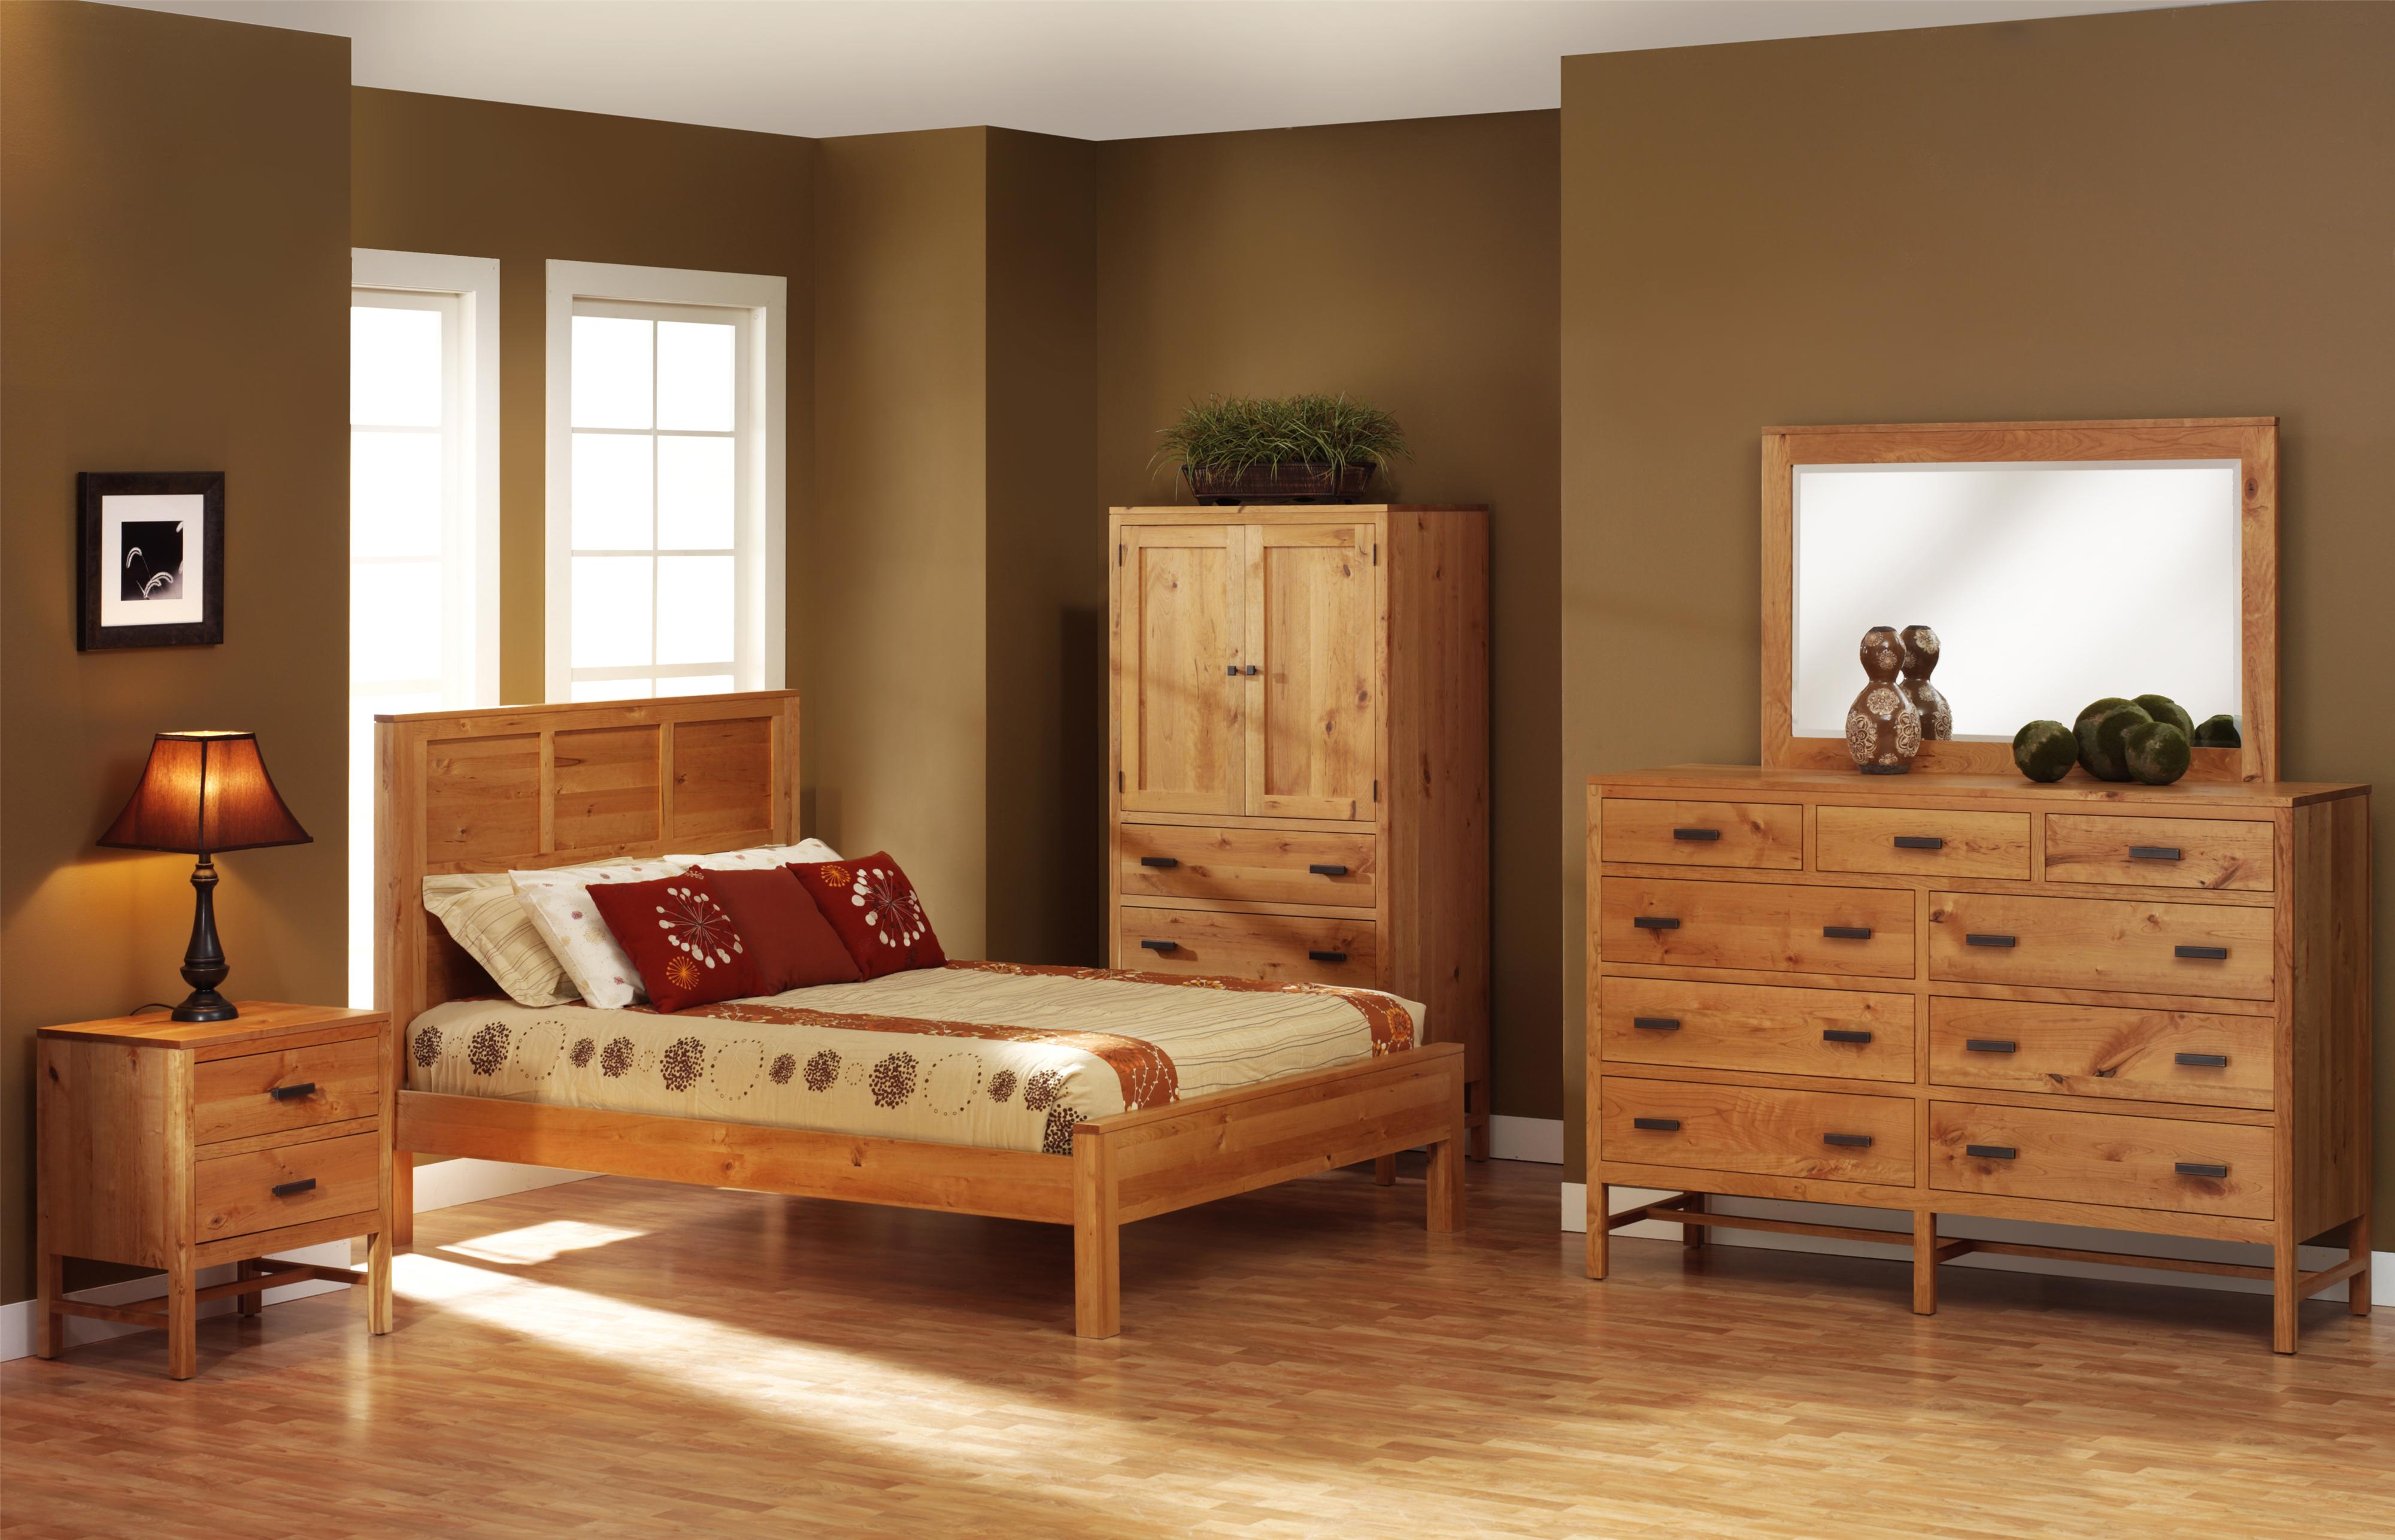 Lynnwood Queen Bedroom Group by Millcraft at Saugerties Furniture Mart